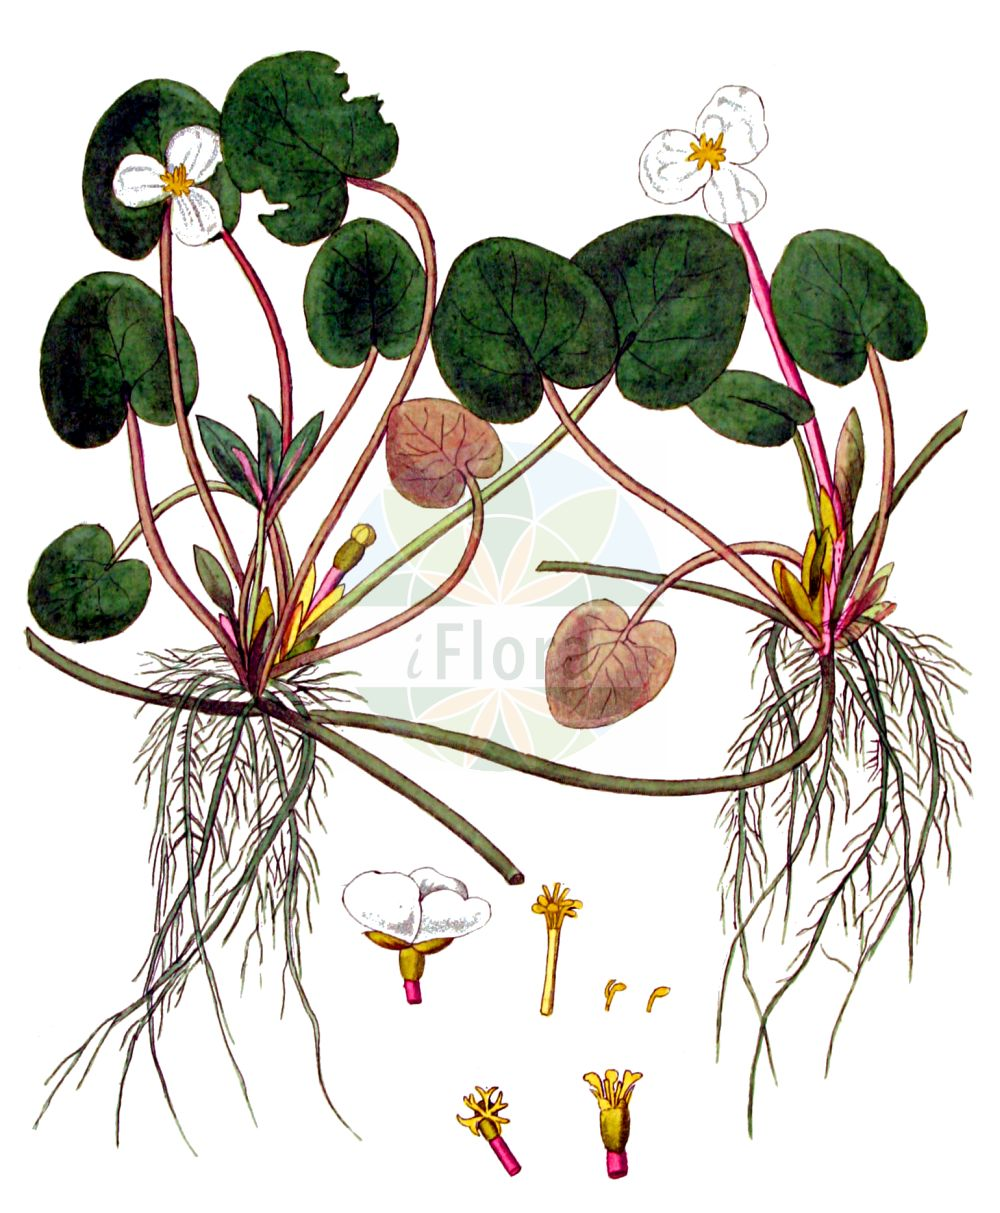 Historische Abbildung von Hydrocharis morsus-ranae (Europaeischer Froschbiss - Frogbit). Das Bild zeigt Blatt, Bluete, Frucht und Same. ---- Historical Drawing of Hydrocharis morsus-ranae (Europaeischer Froschbiss - Frogbit).The image is showing leaf, flower, fruit and seed.(Hydrocharis morsus-ranae,Europaeischer Froschbiss,Frogbit,Hydrocharis morsus-ranae,Europaeischer Froschbiss,Froschbiss,Frogbit,European Frogbit,Common Frogbit,Hydrocharis,Froschbiss,Frogbit,Hydrocharitaceae,Froschbissgewaechse,Frogbit family,Blatt,Bluete,Frucht,Same,leaf,flower,fruit,seed,Kops (1800-1934))